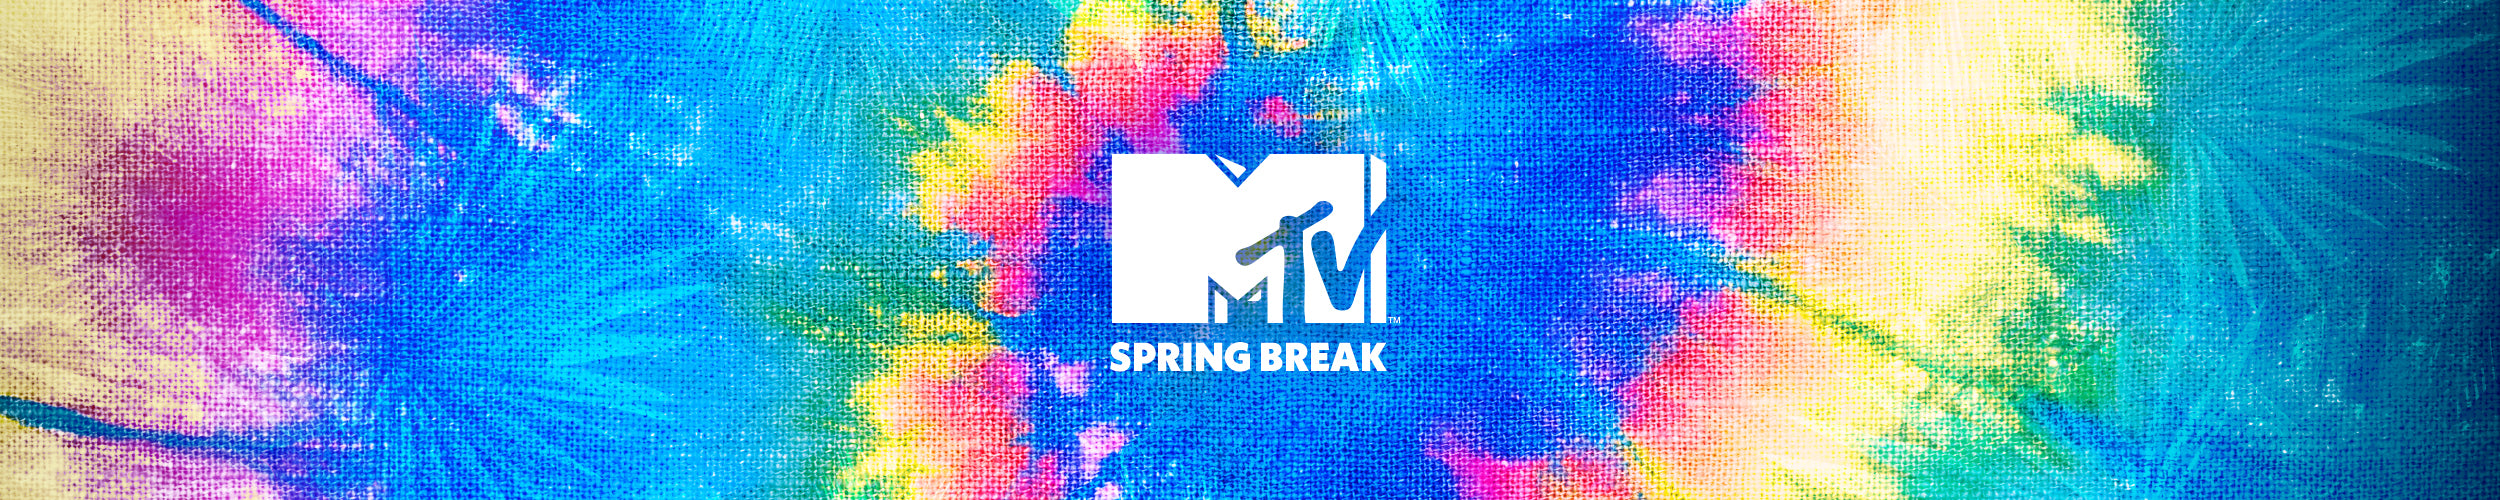 MTV Spring Break